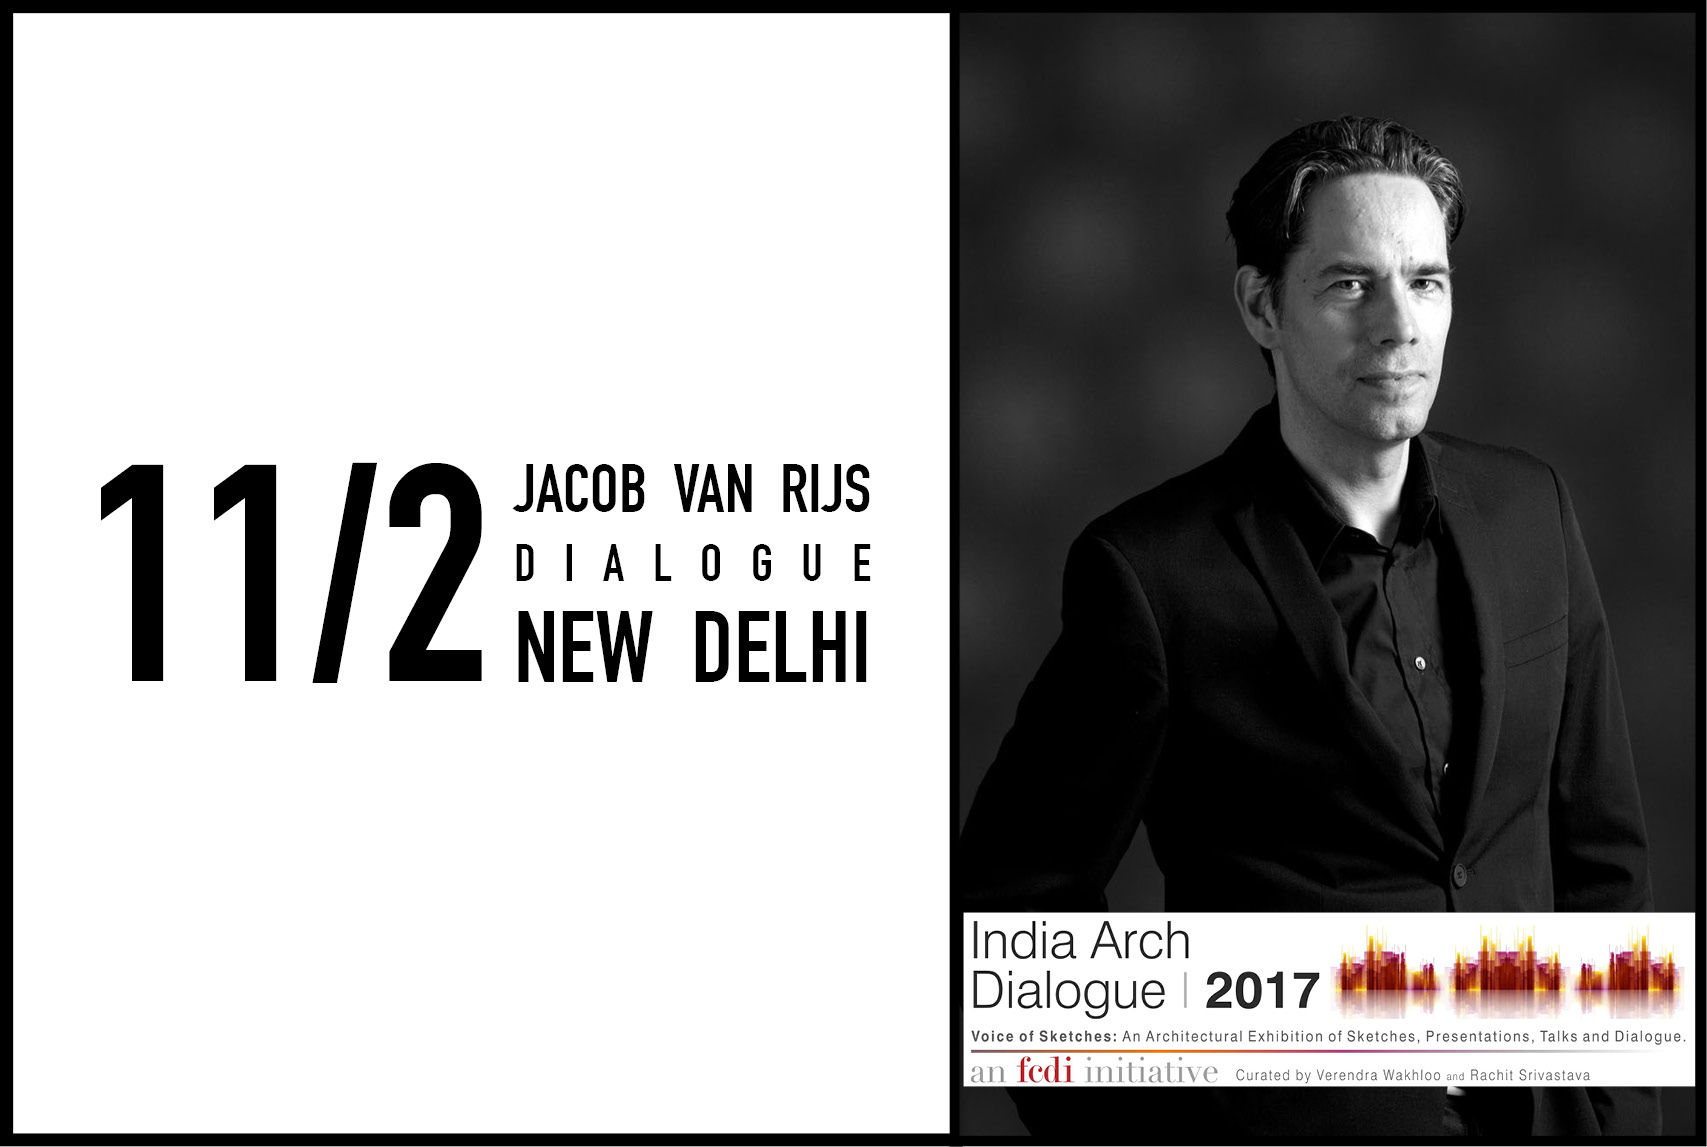 Jacob van Rijs to give lecture at India Arch Dialogues in New Delhi, India, 11 February 2017